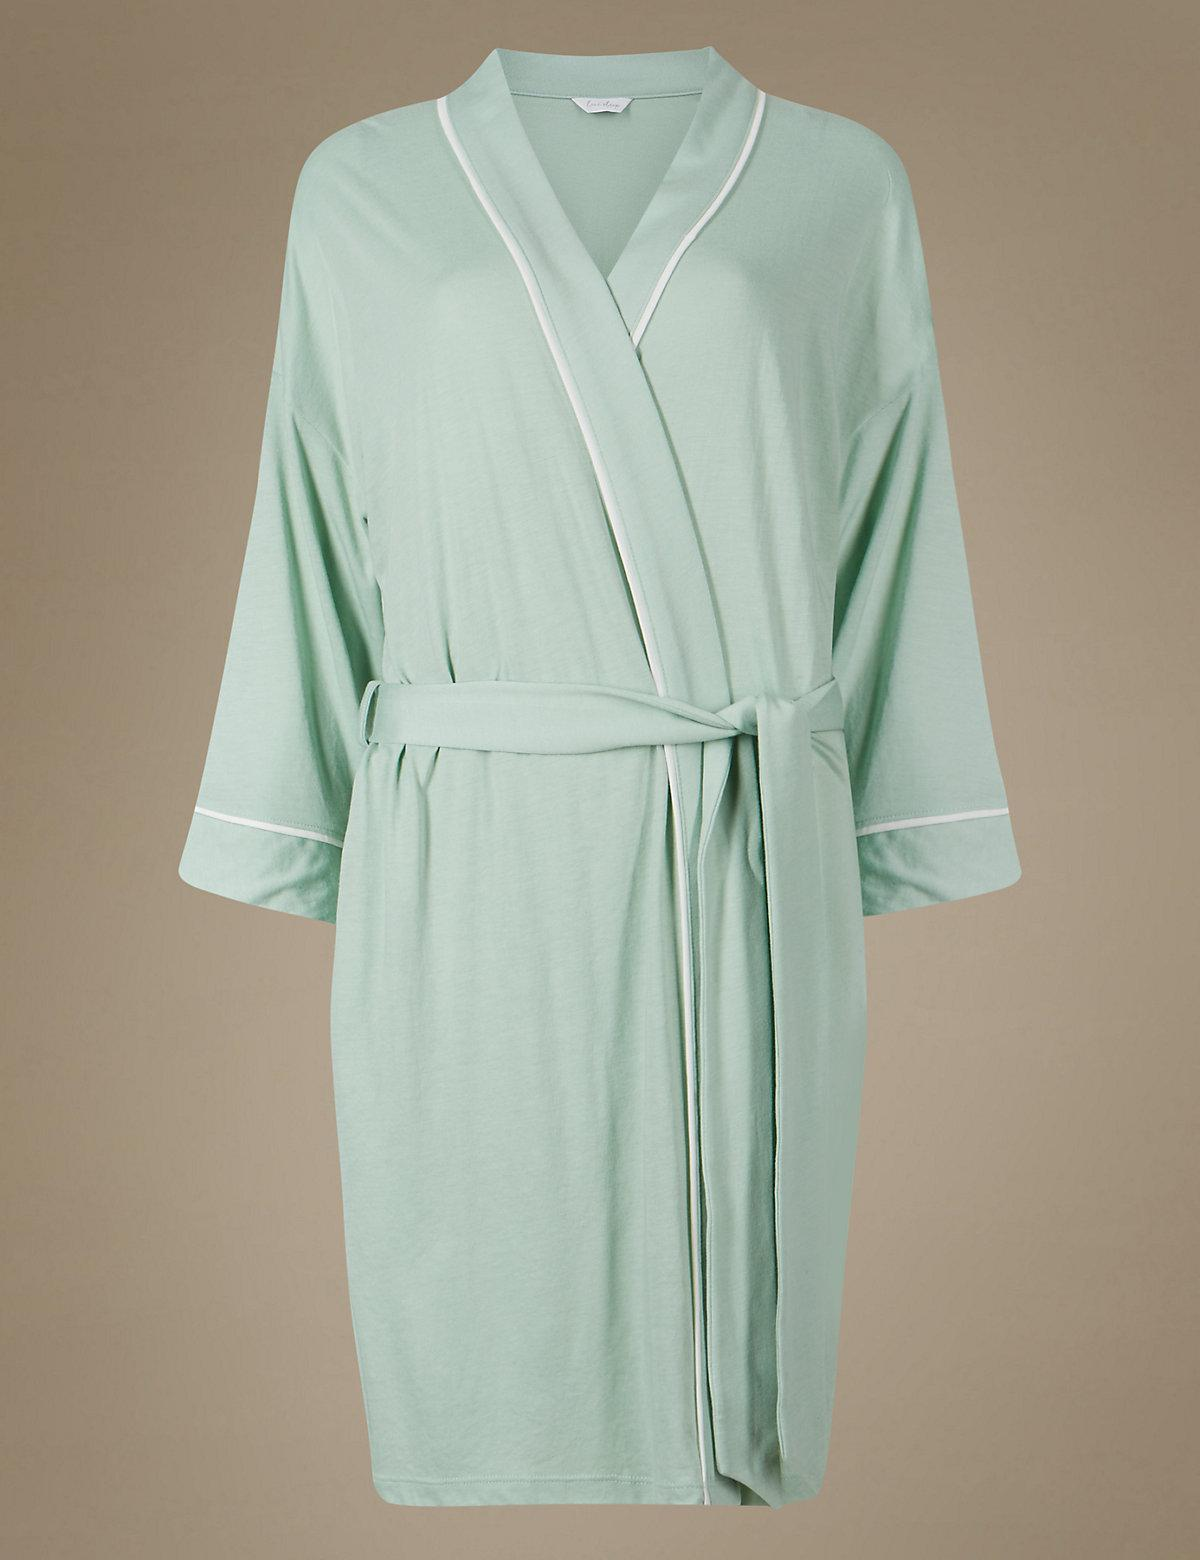 Fantastic Zip Front Dressing Gowns Photos - Wedding and flowers ...